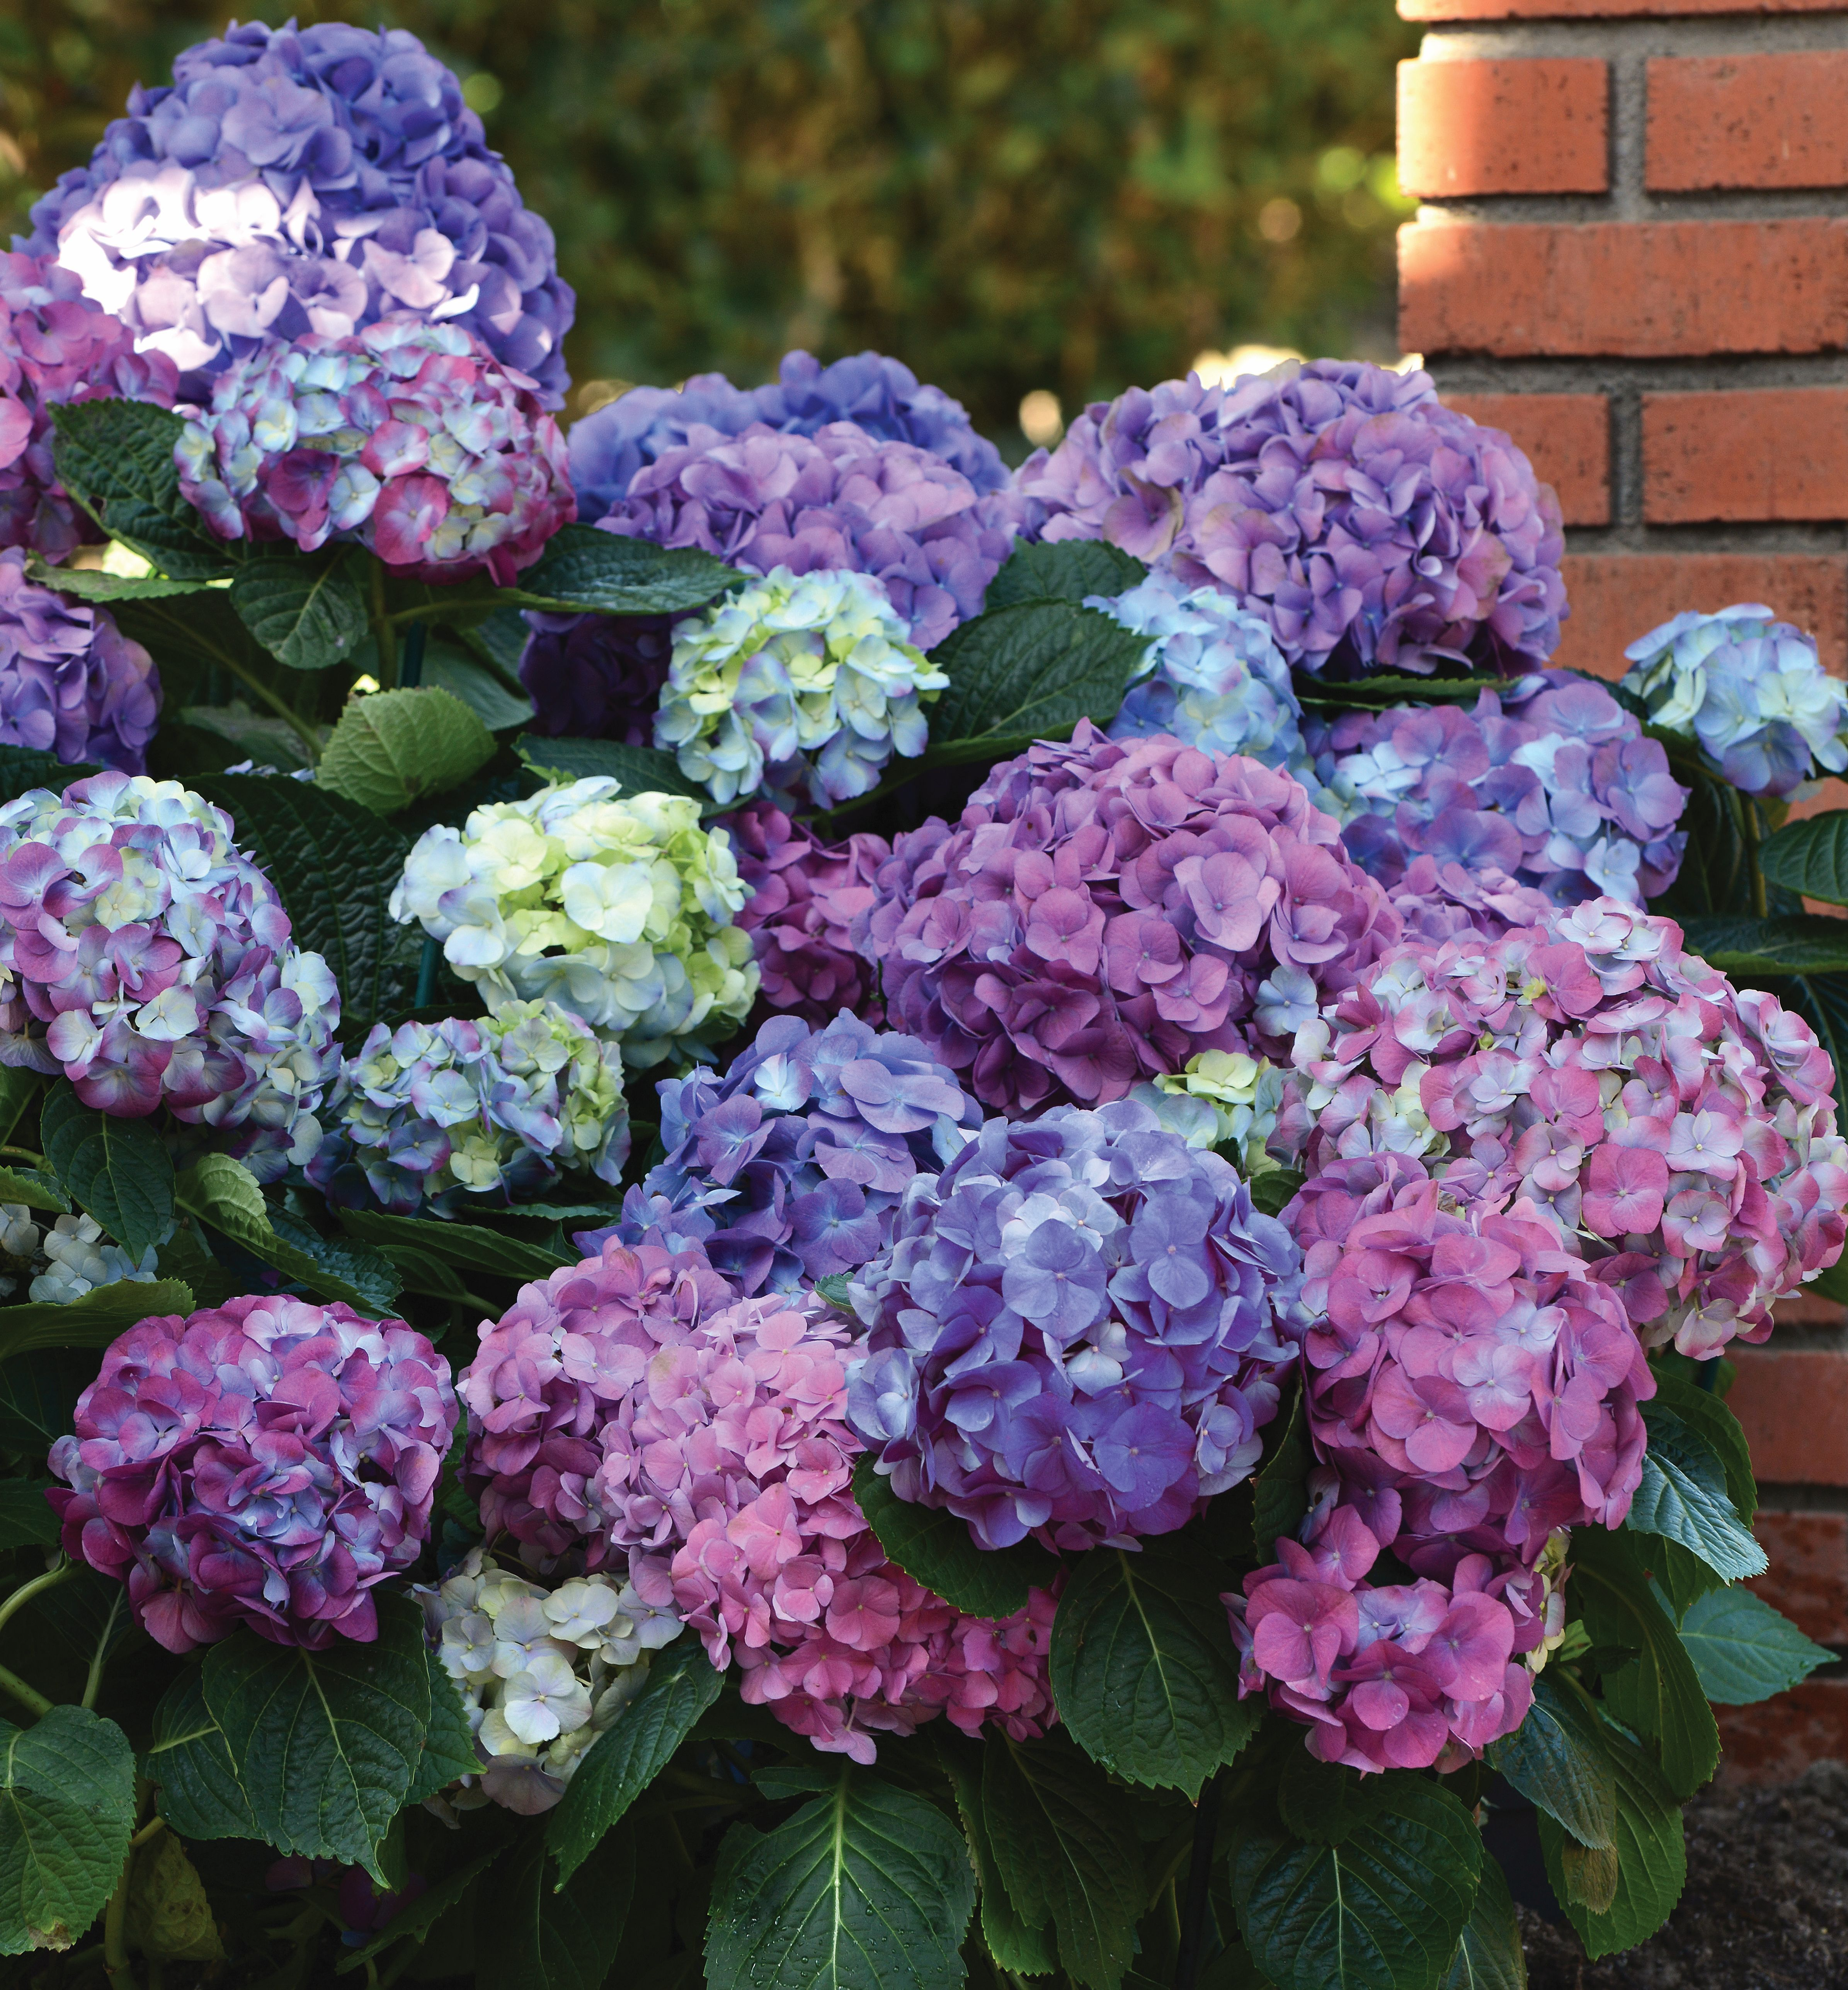 L A Dreamin Hydrangea An Exciting Hydrangea With Both Pink And Blue Blooms On The Same Plant This Is A Strong Rebloo In 2020 Planting Hydrangeas Hydrangea Plants